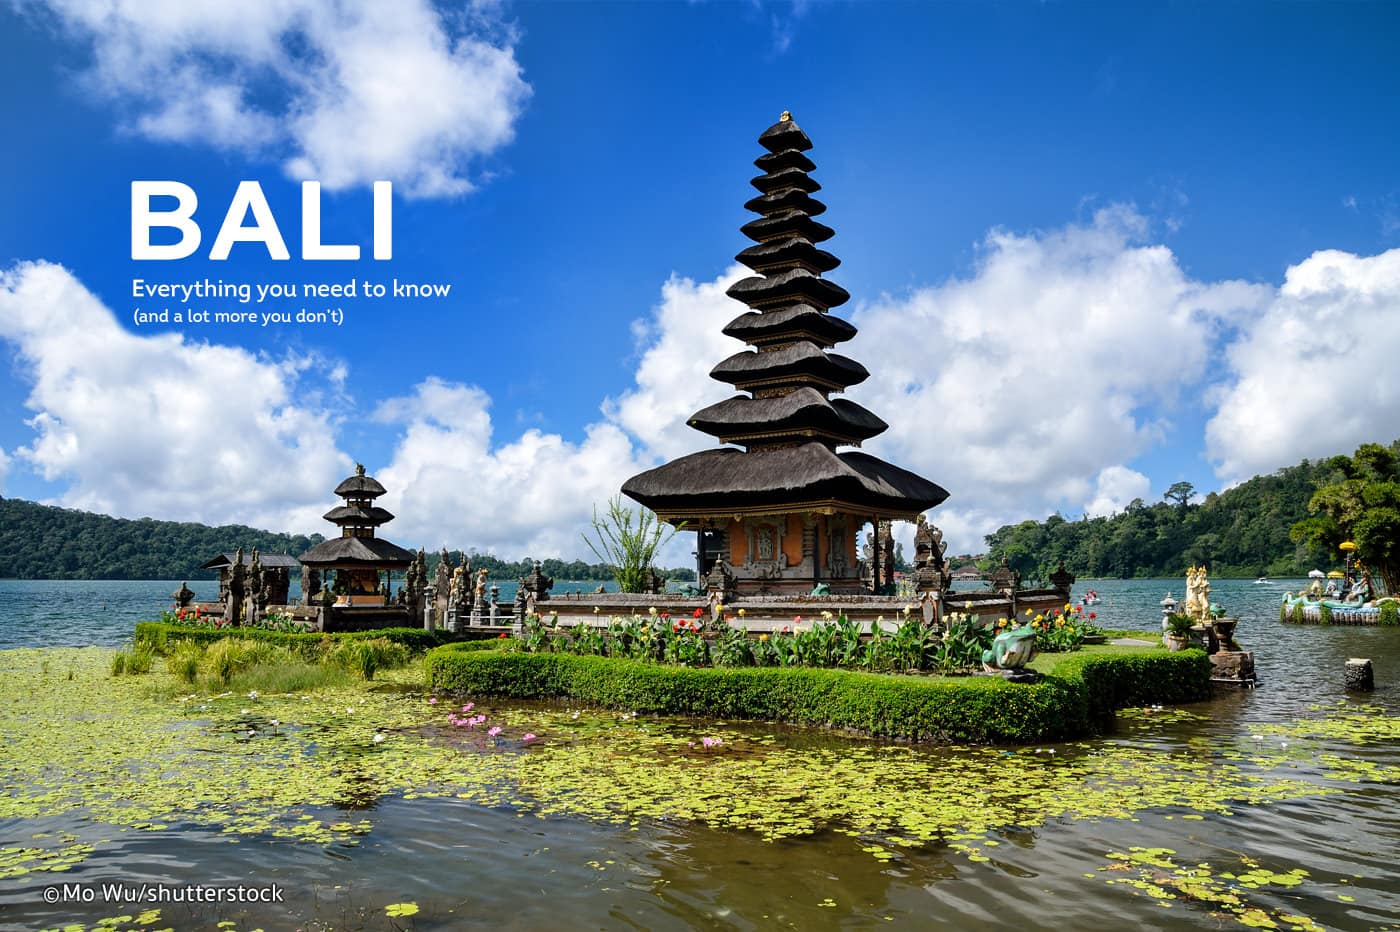 Los Angeles to Bali Indonesia $443 RT Airfares on Xiamen Airlines (Very Limited Dates Oct-Nov 2019)